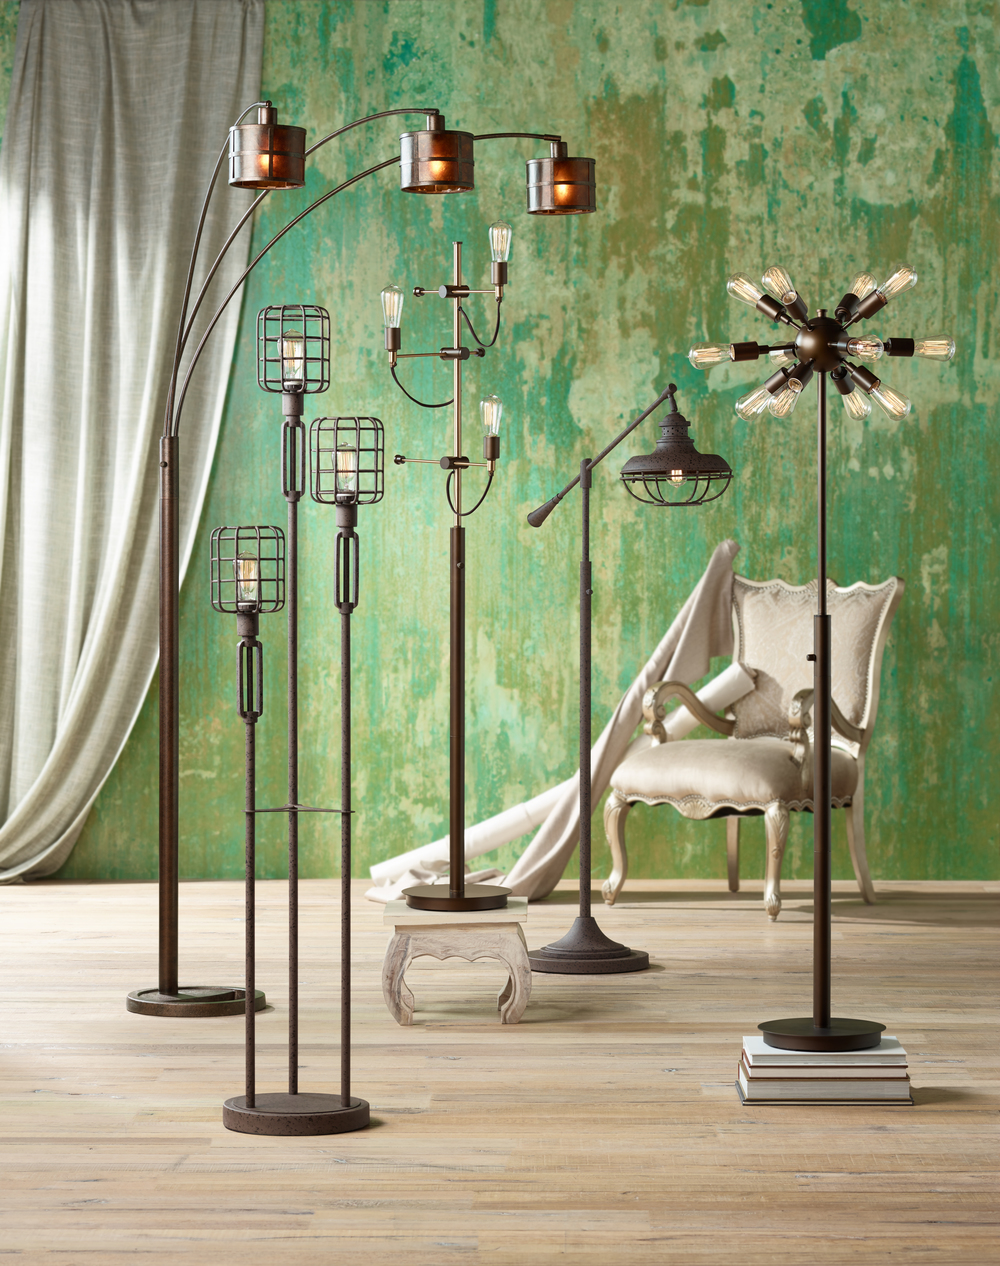 121715-transitional-floor-lamps-h.jpg